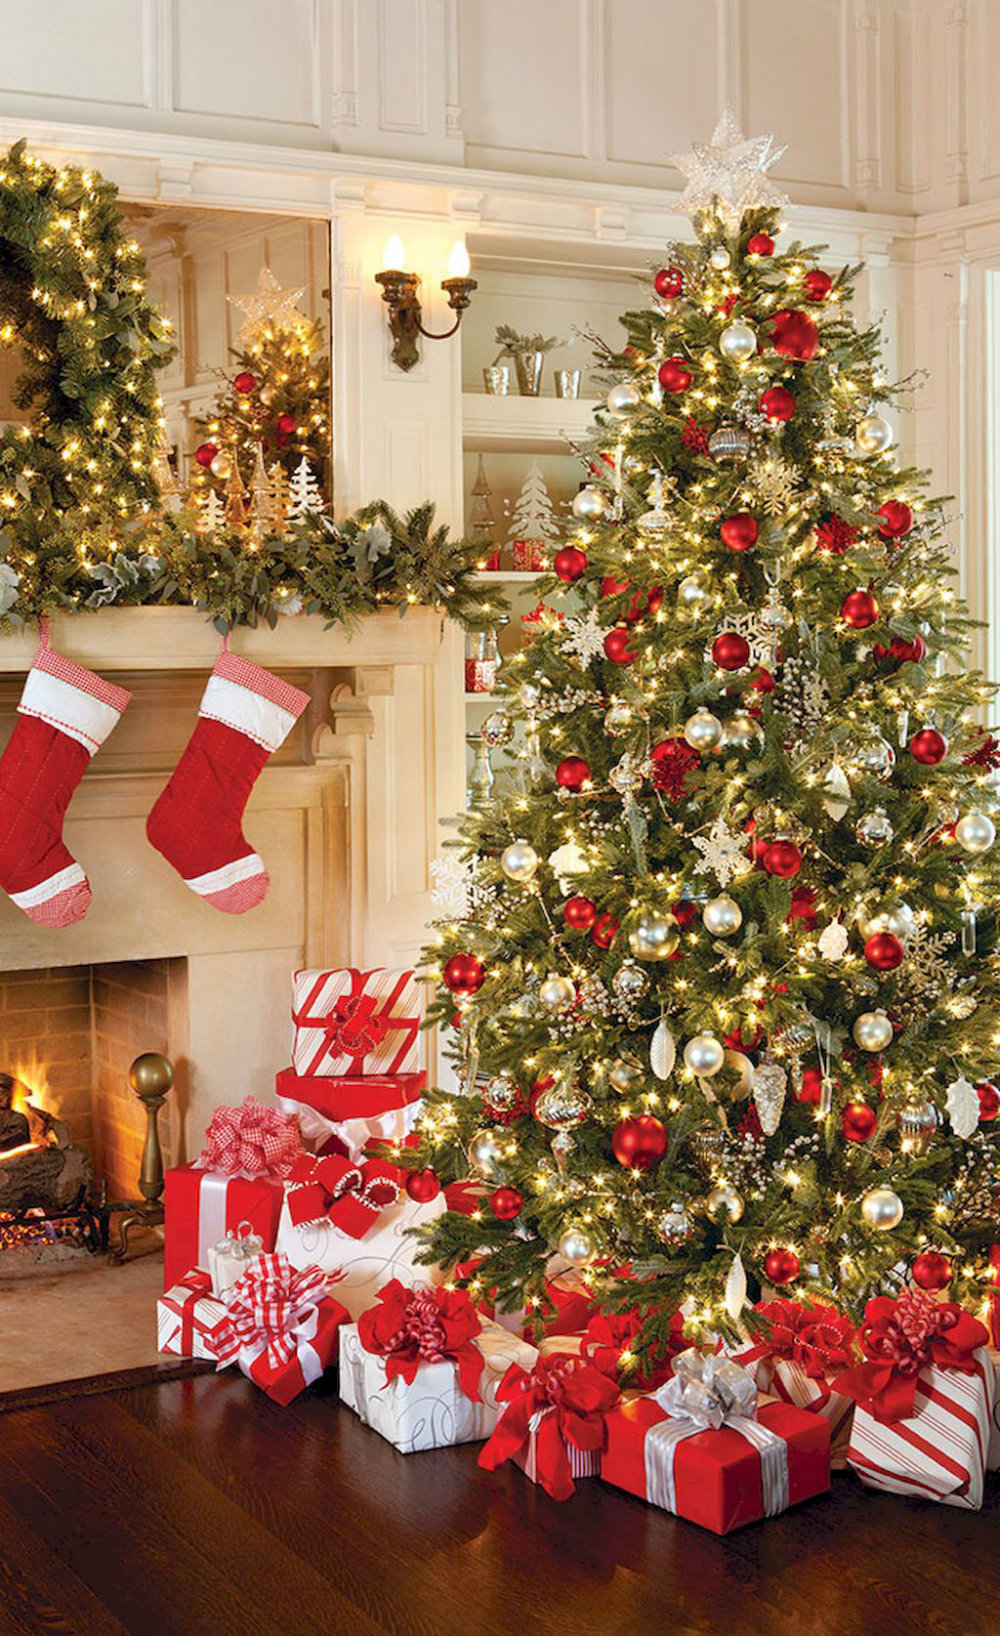 7 Chic Christmas Decorations for The Most Unforgettable Holiday 03 chic christmas decorations 7 Chic Christmas Decorations for The Most Memorable Holiday 7 Chic Christmas Decorations for The Most Unforgettable Holiday 03